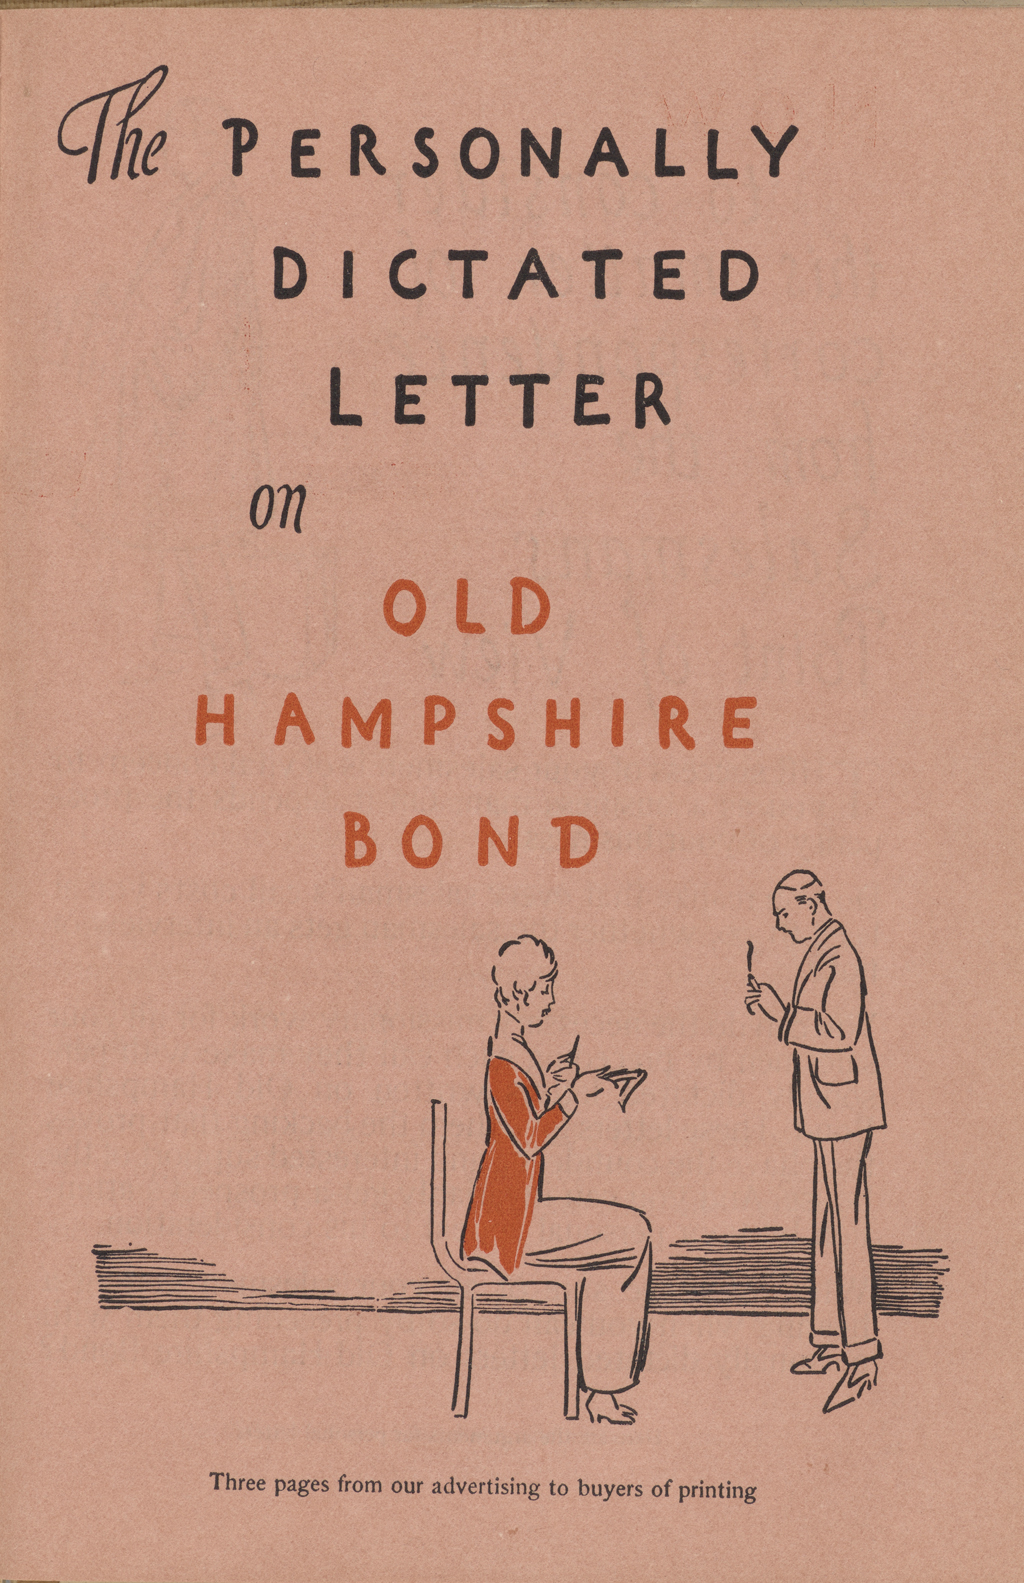 """The Personally Dictated Letter on Old Hampshire Bond"" from Print. Lettering by W.A. Dwiggins."